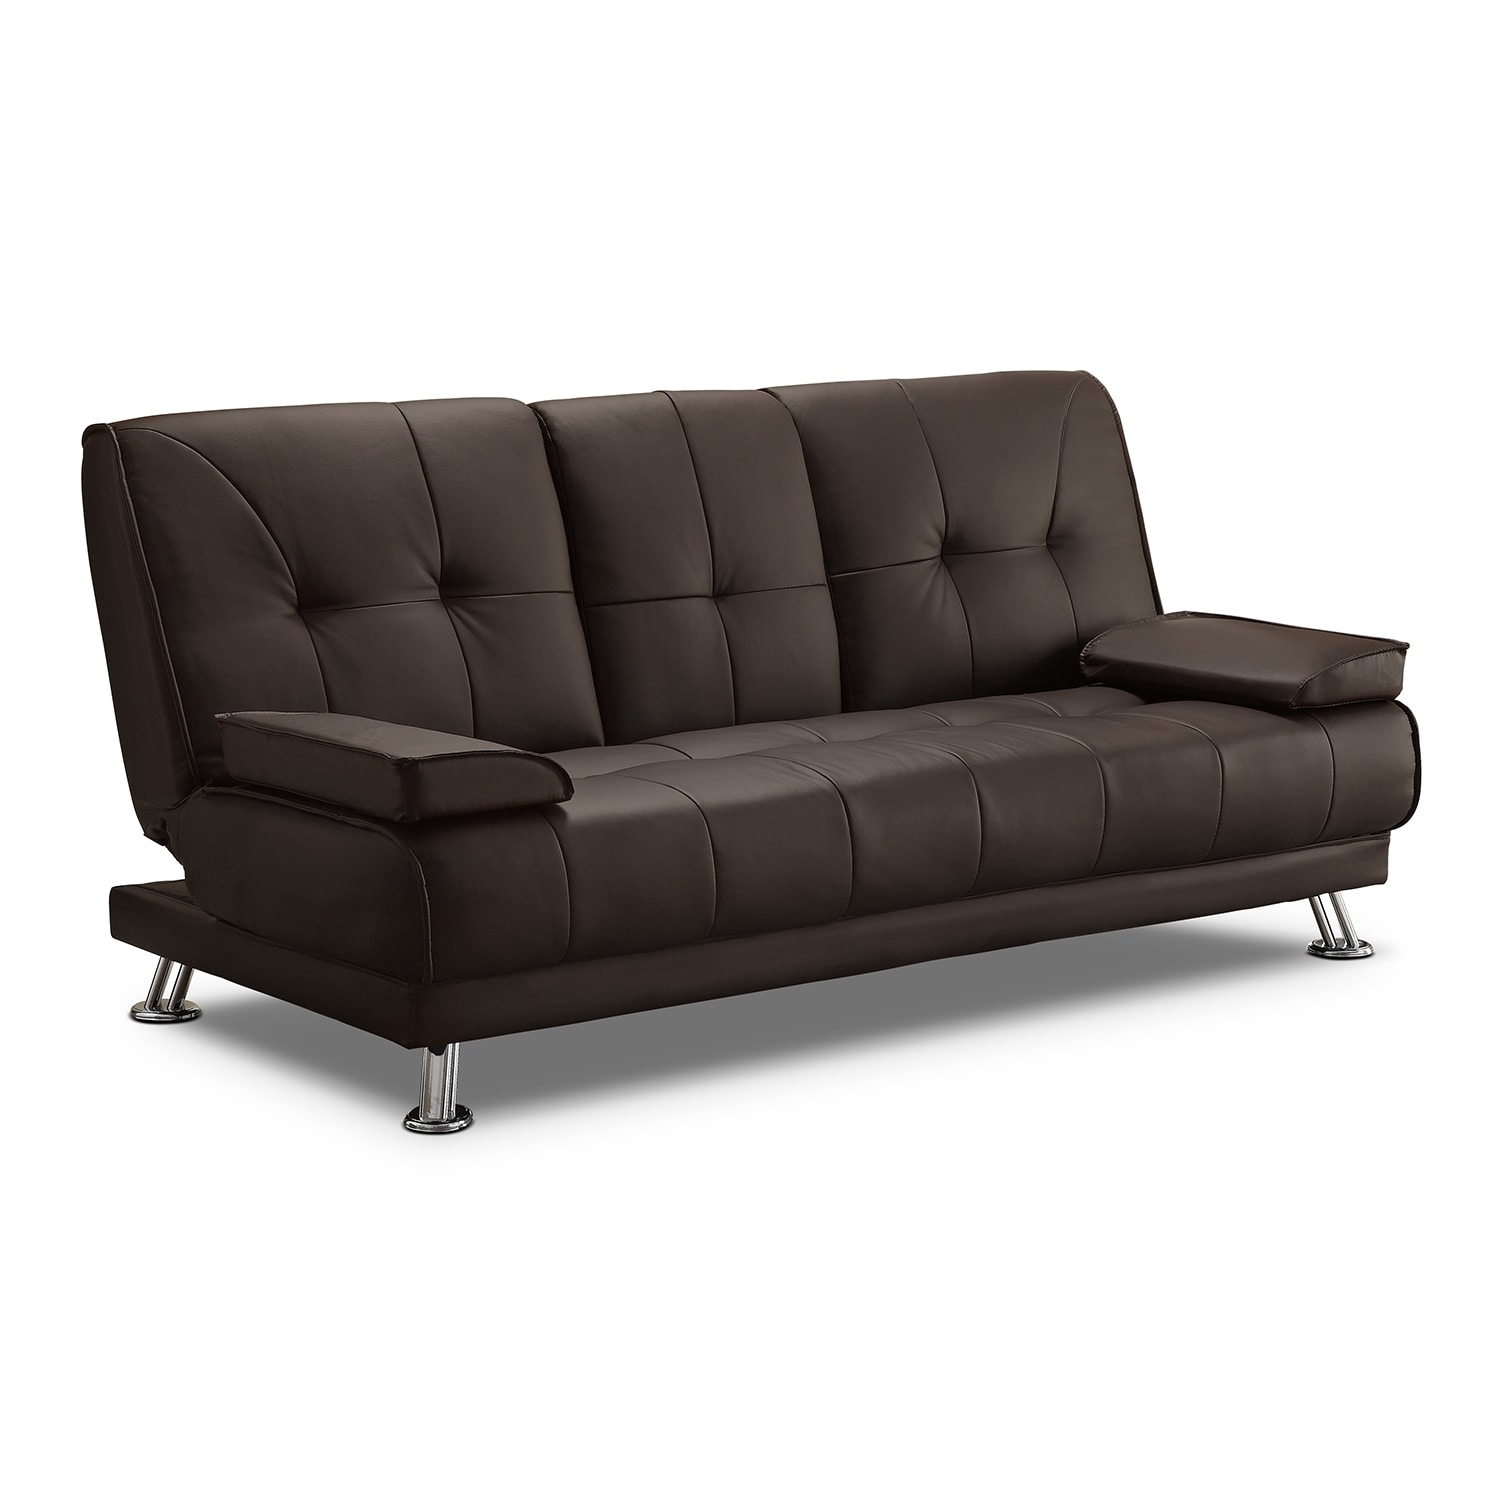 American Furniture Warehouse Sofa Beds Sofa Menzilperde Net